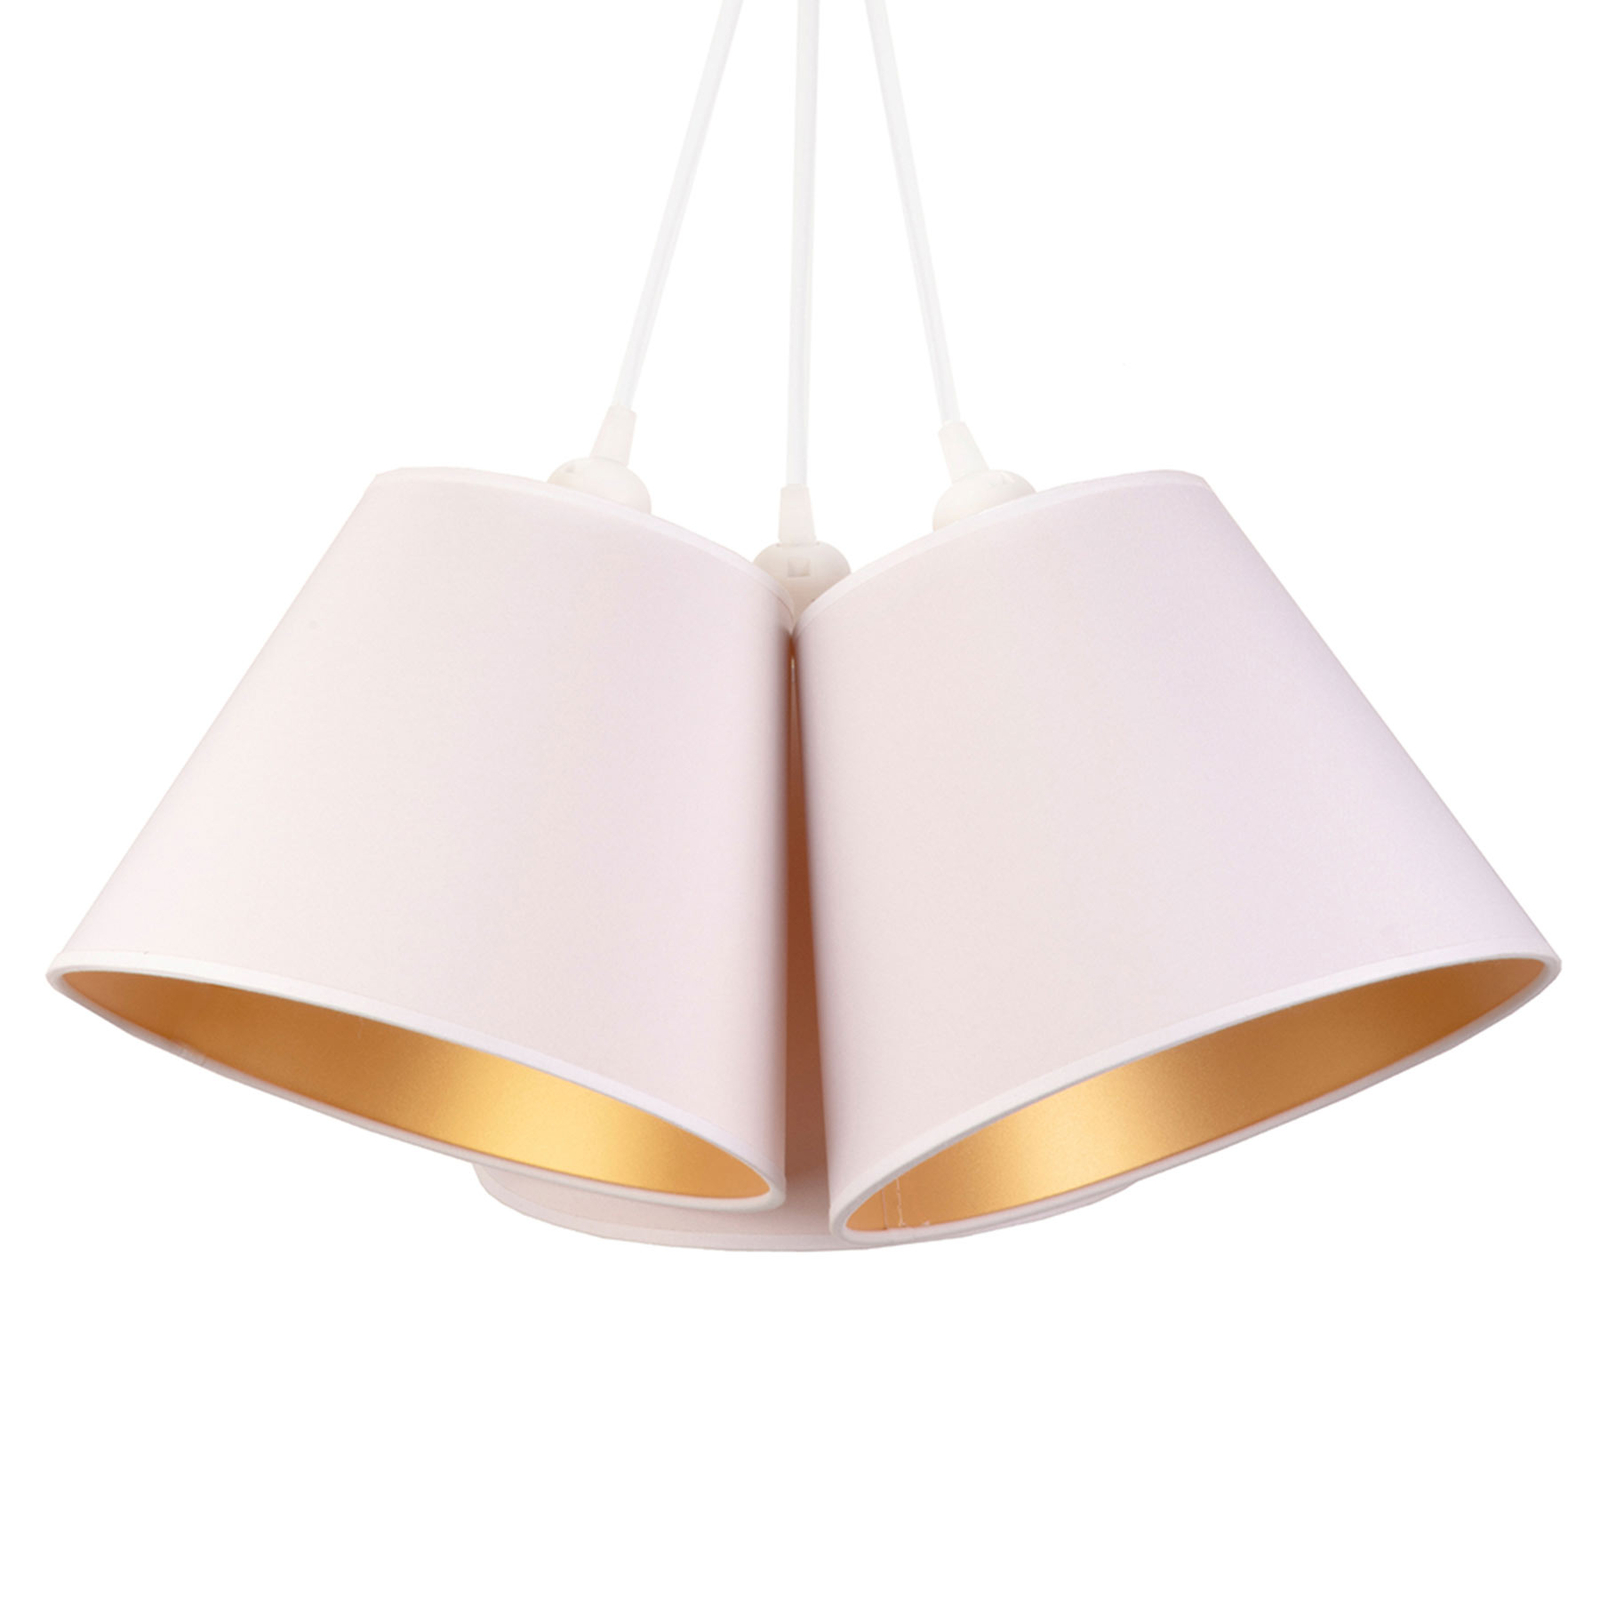 Hanglamp Twiggy, 3-lamps, wit